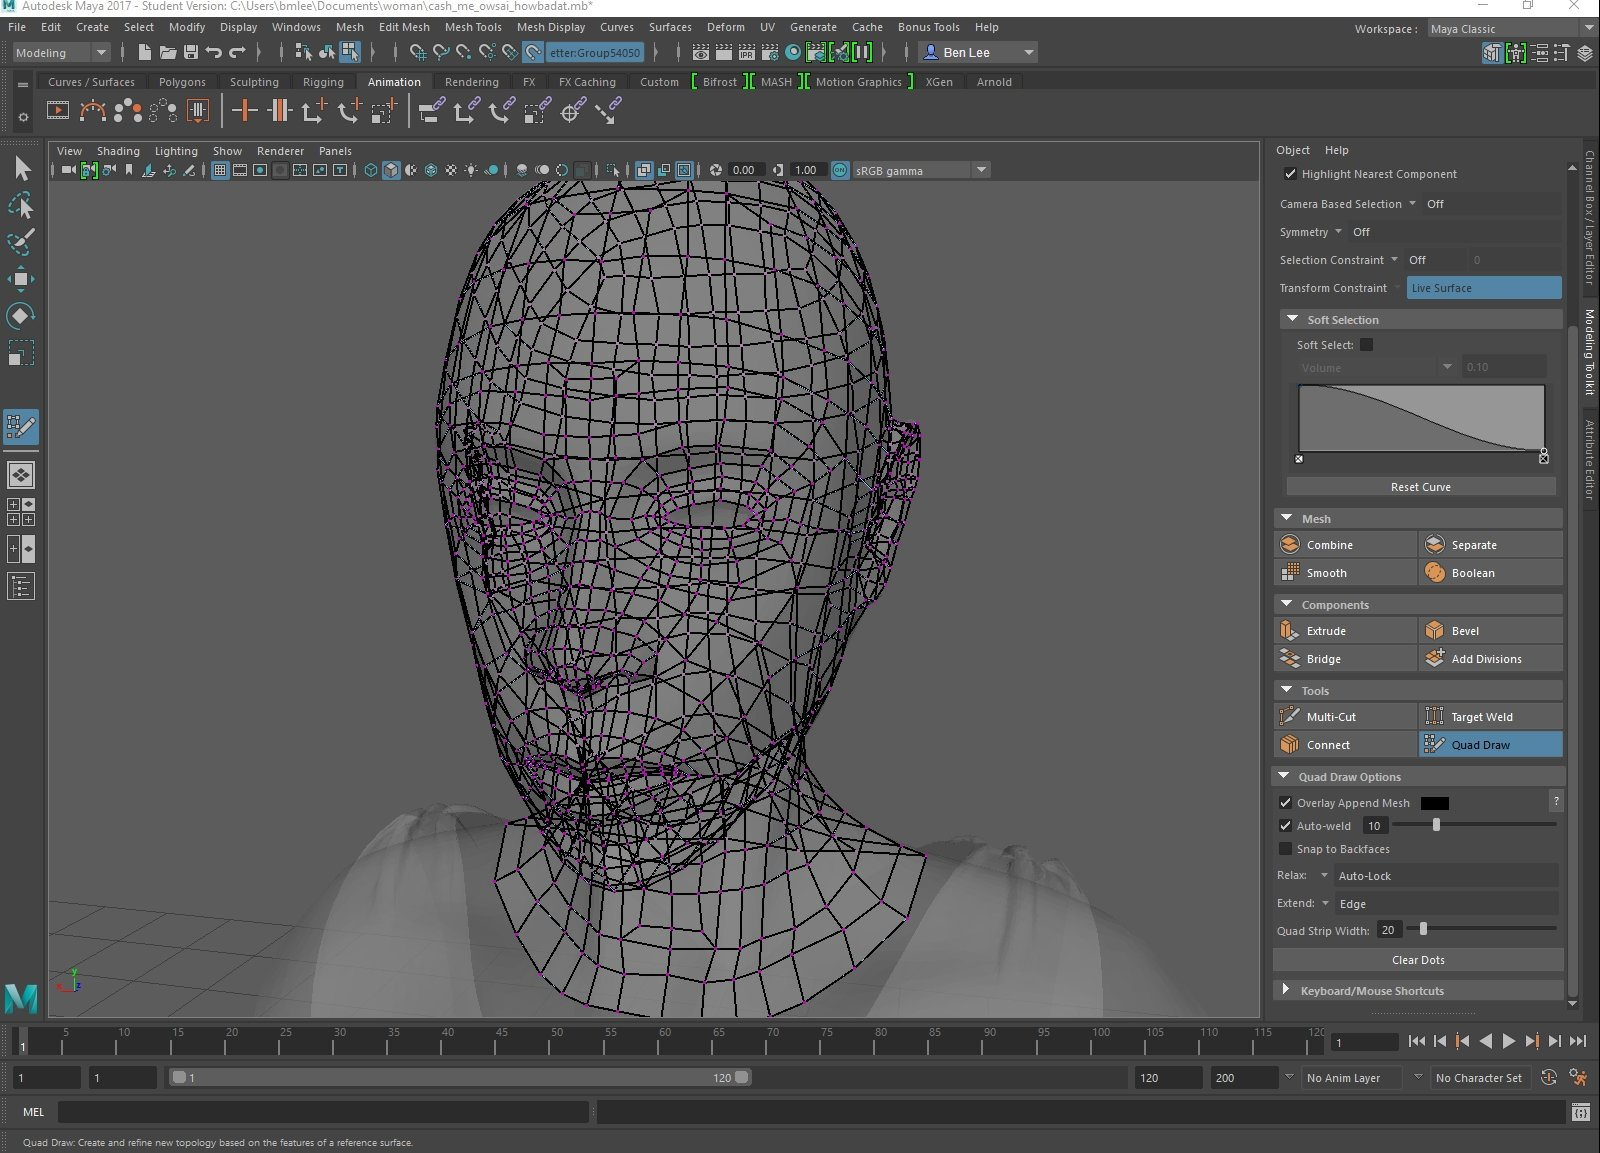 Maya: Quad draw visibility  Need assistance  — polycount